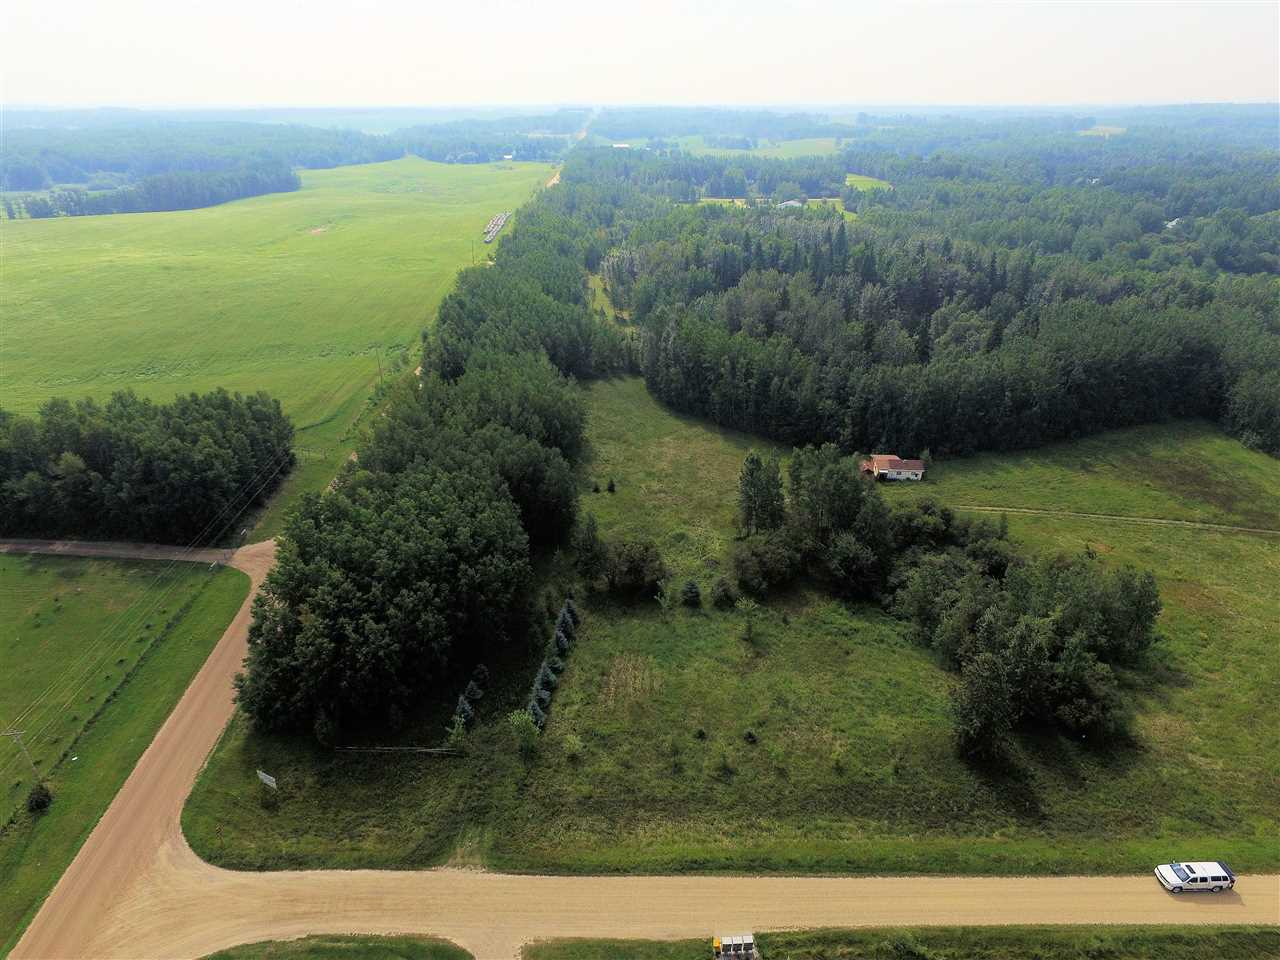 Main Photo: 29 52414 RGE RD 30 Road: Rural Parkland County Rural Land/Vacant Lot for sale : MLS® # E4078362